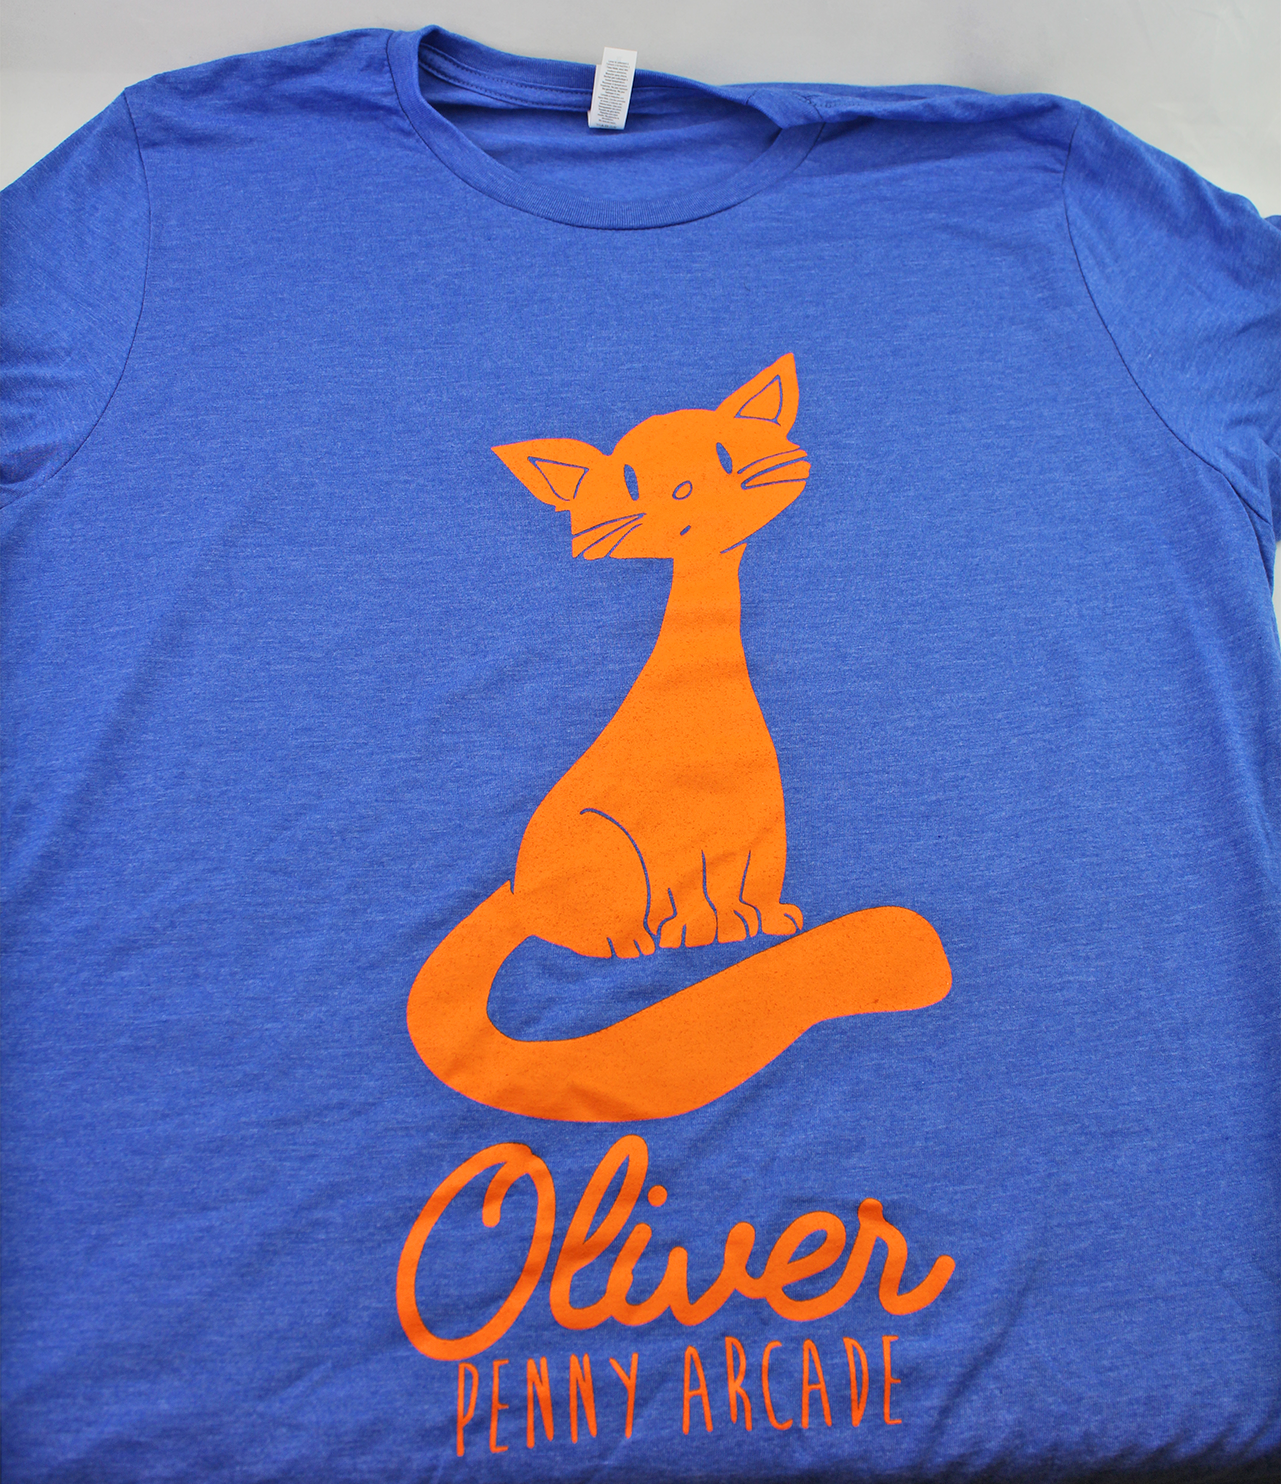 Penny Arcade - Oliver tee